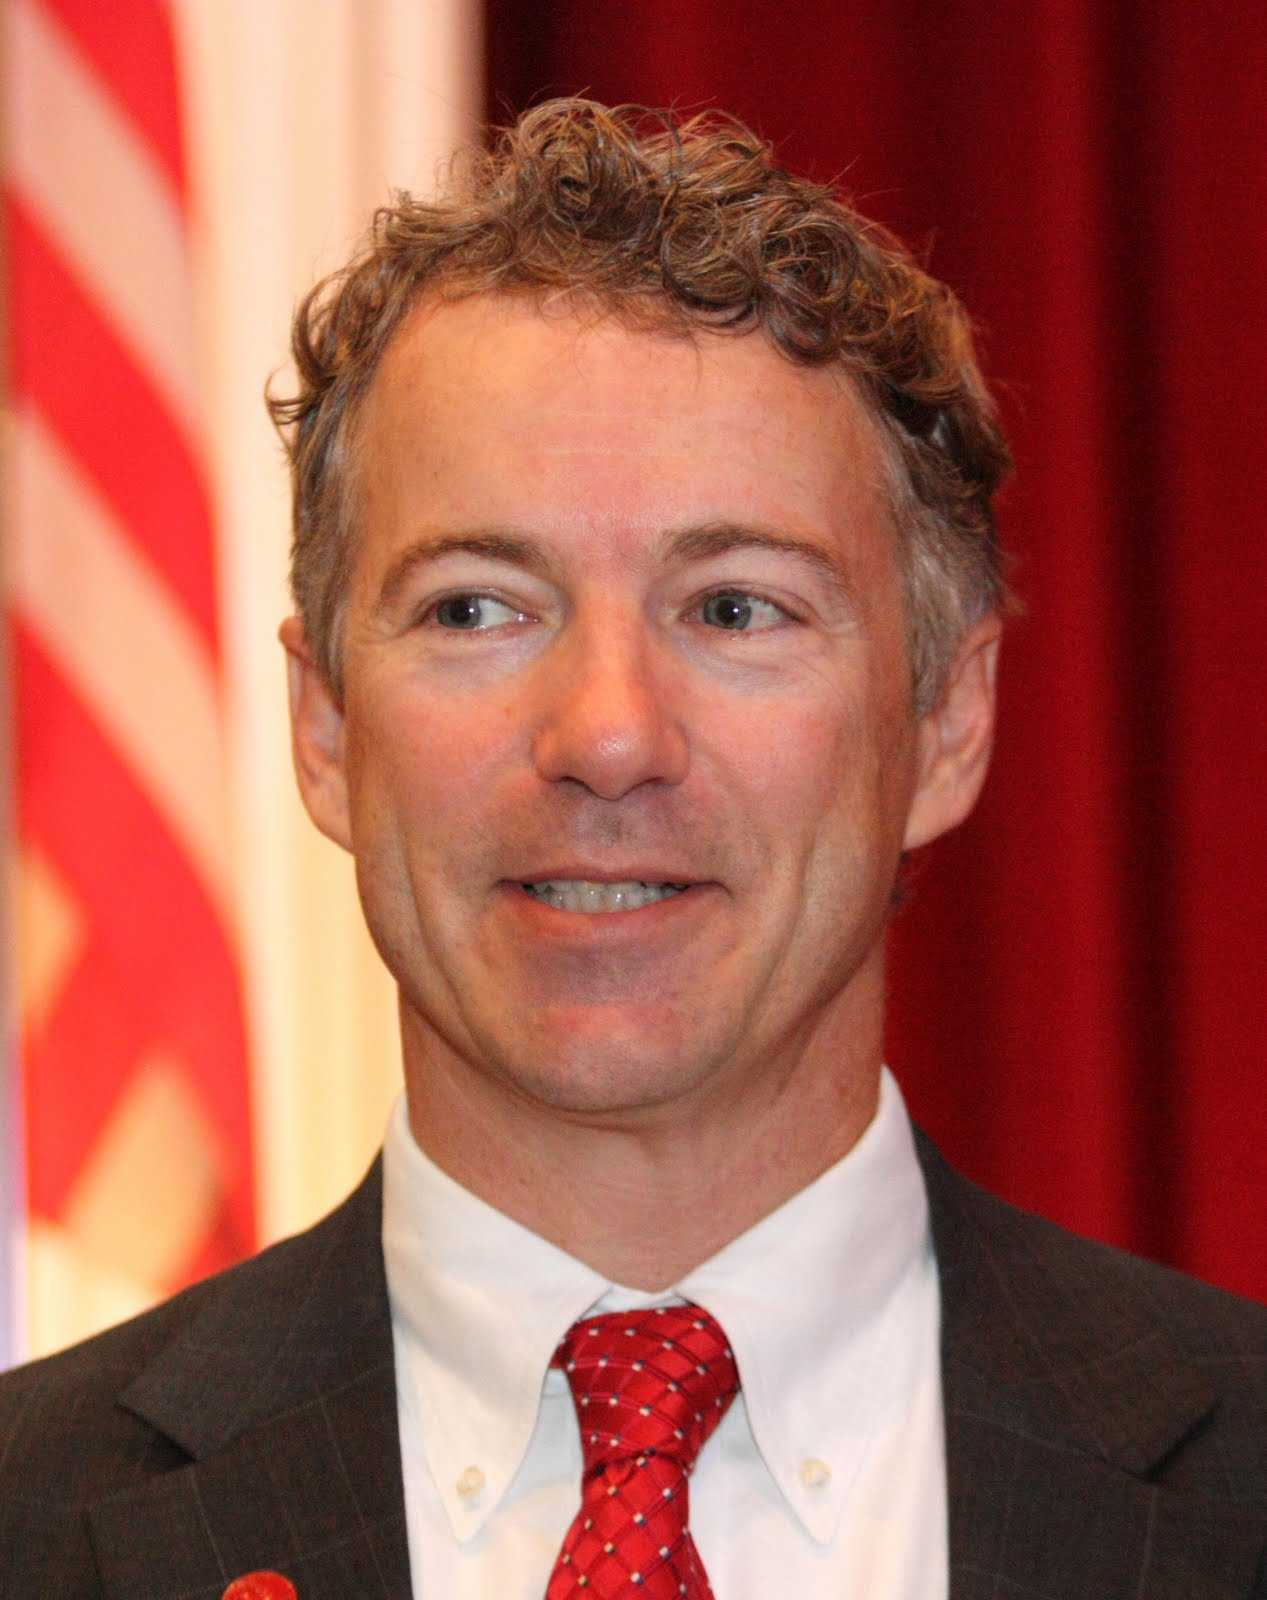 Sen. Paul Introduces Bill to Protect Americans Against Unwarranted Drone Surveillance